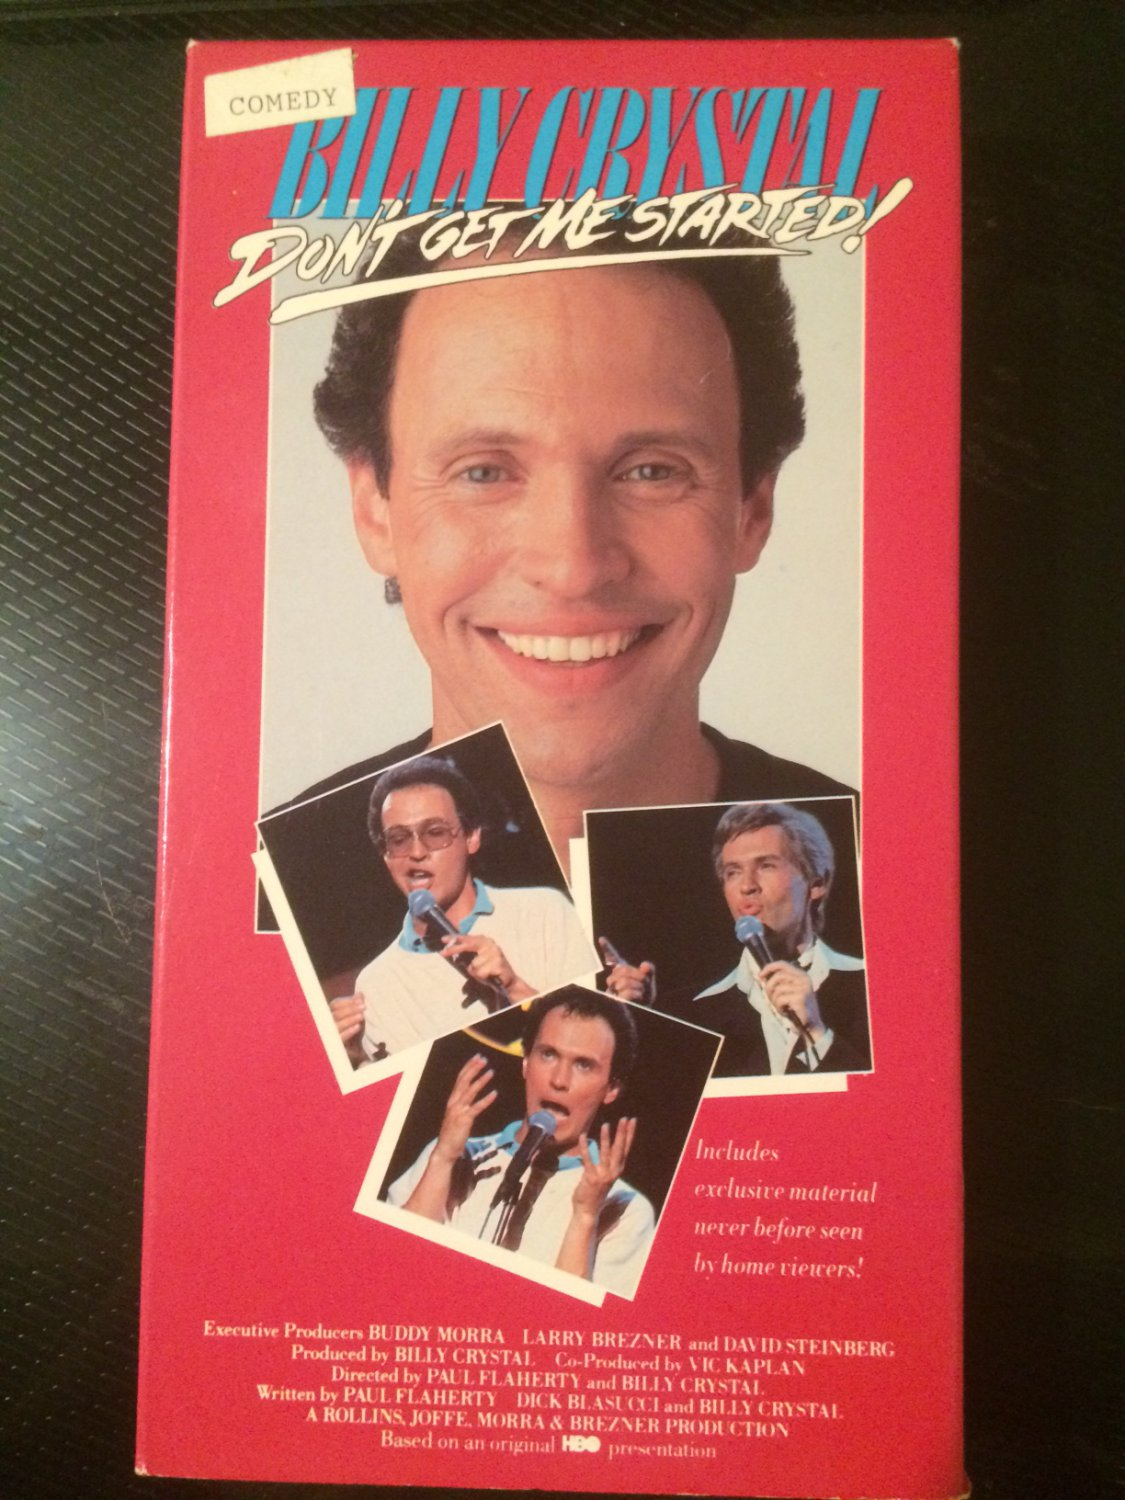 Billy Crystal: Don't Get Me Started - Used - VHS - NOT ON DVD